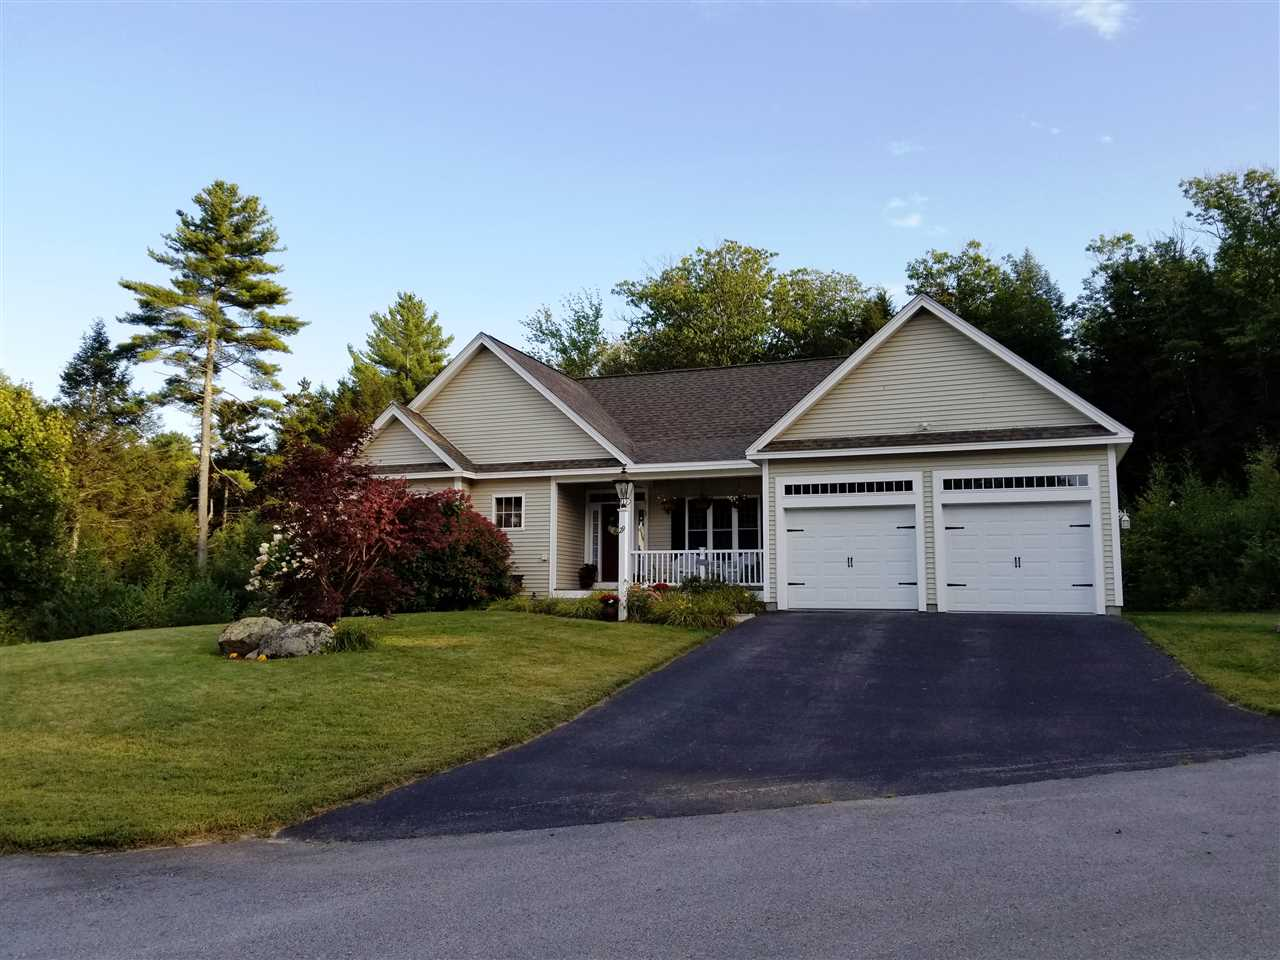 MLS 4777026: 29 Legacy Lane, Peterborough NH